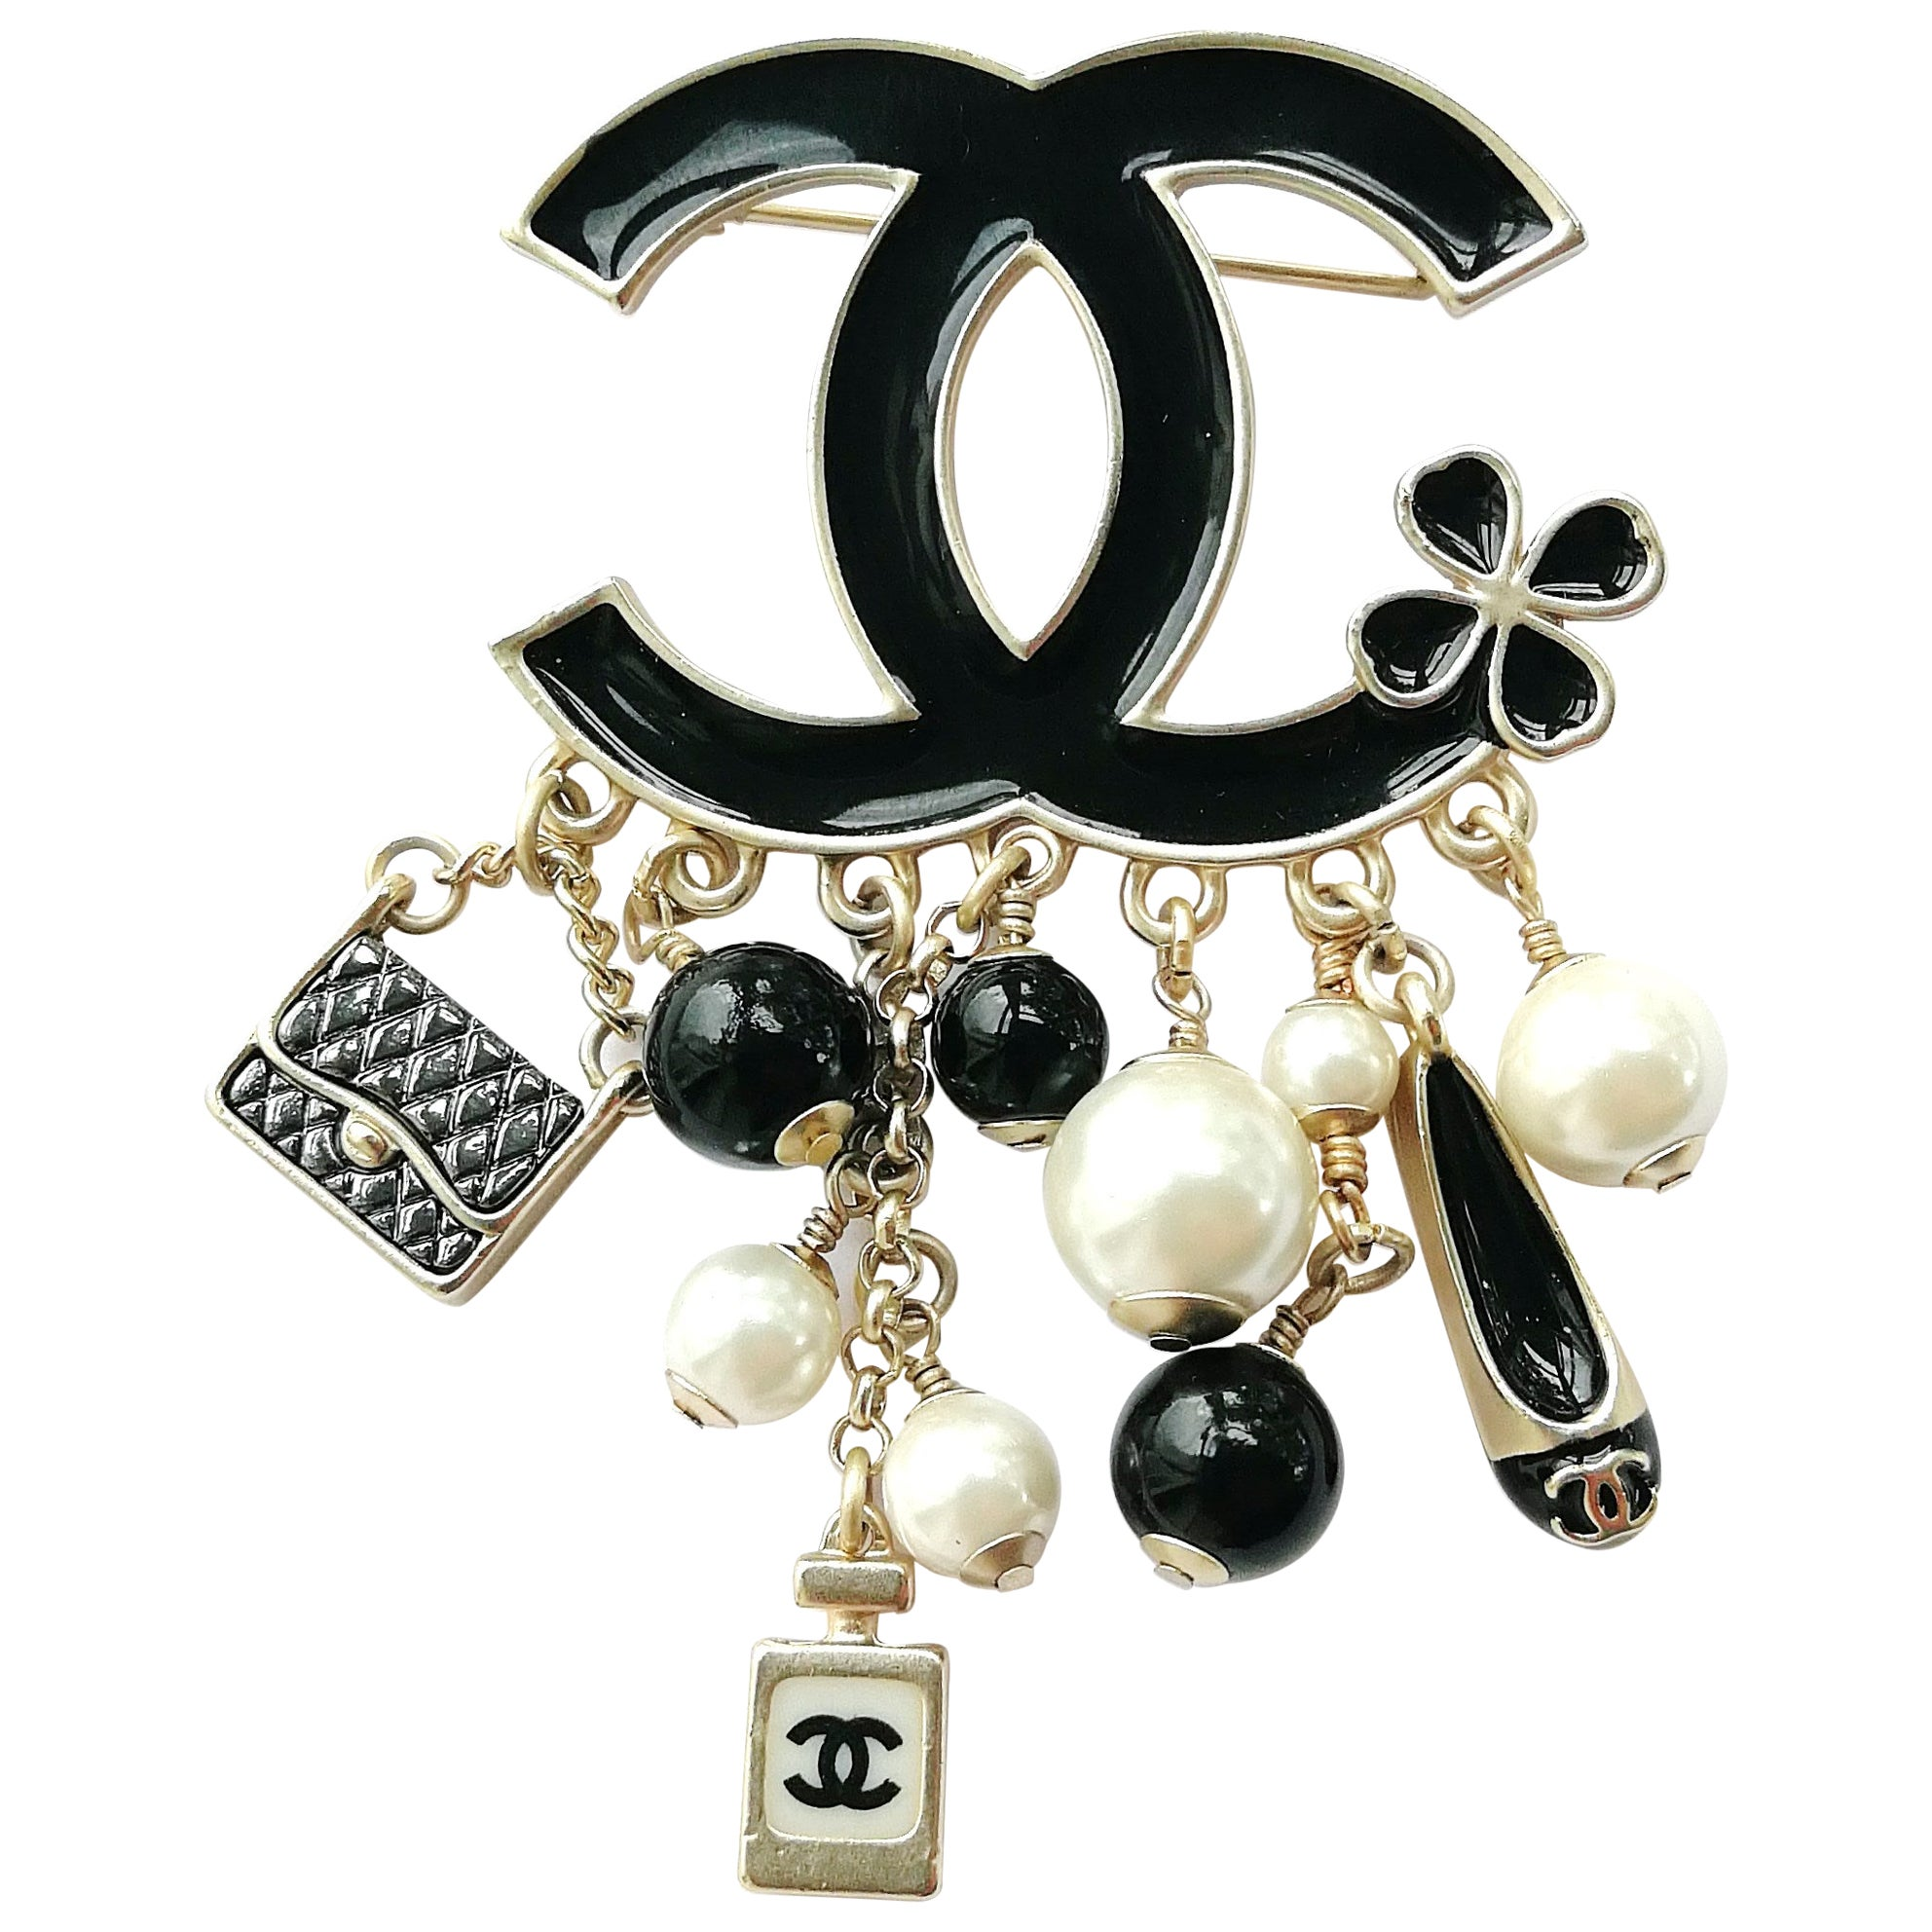 45aa39eeb Large black enamelled and silvered metal Double C 'charm' brooch, Chanel,  2014 at 1stdibs